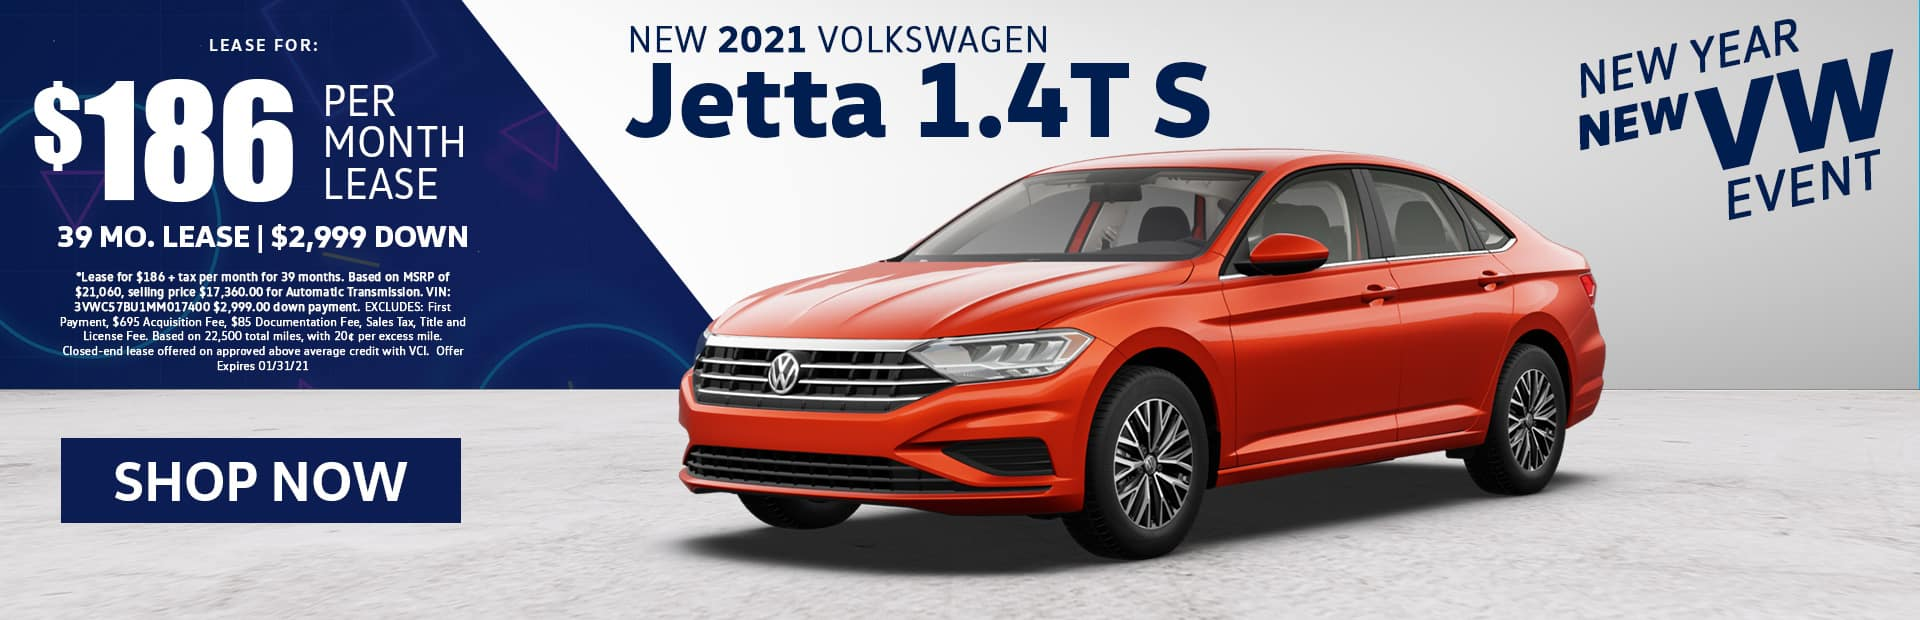 new 2021 vw jetta s lease special